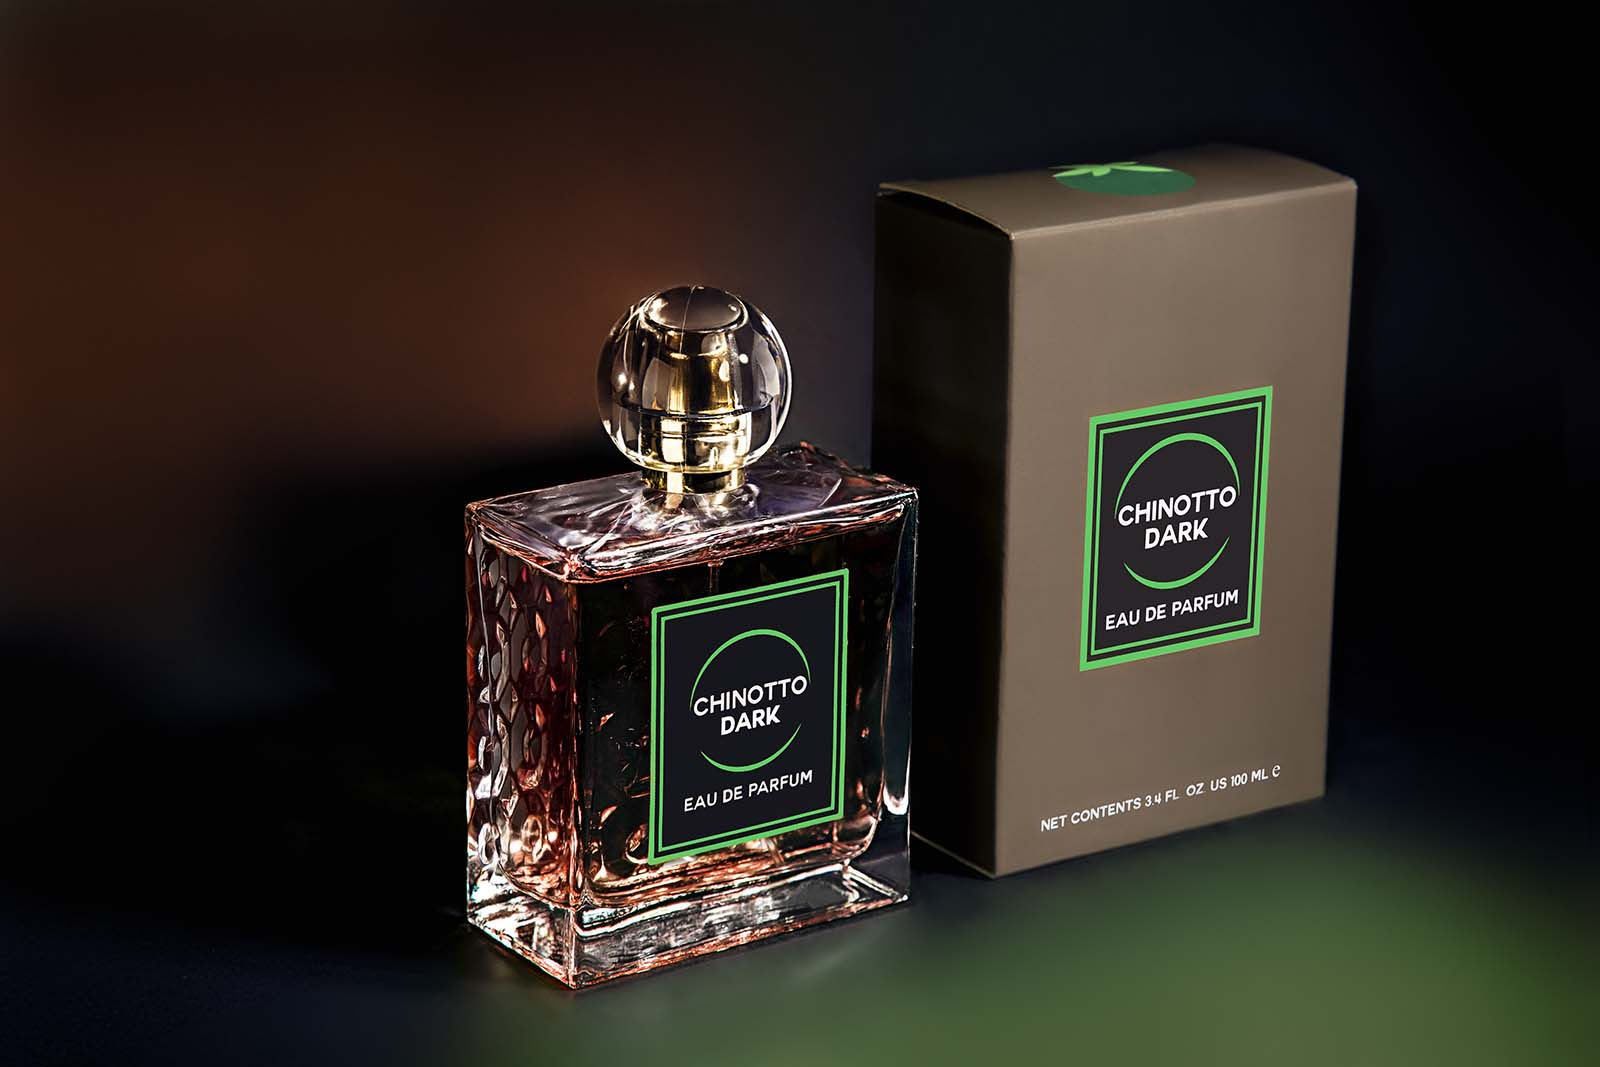 Chinotto perfumes, fine perfumery and cosmetics